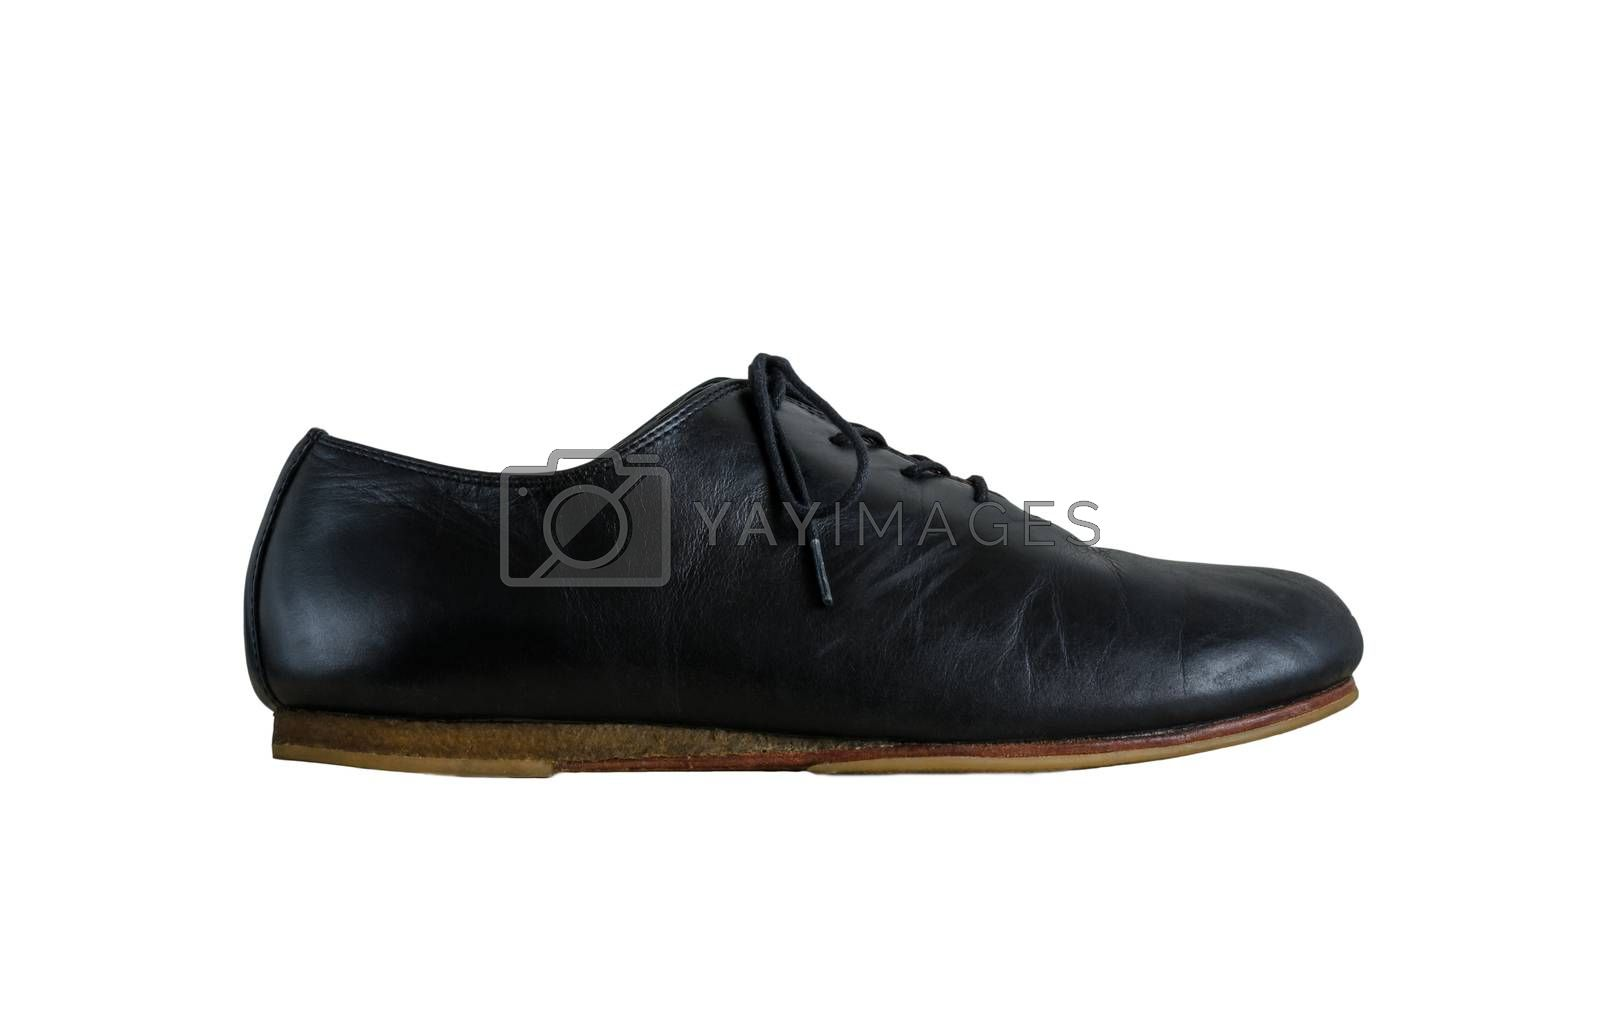 Royalty free image of Side view of black leather shoes isolated on white by siraanamwong